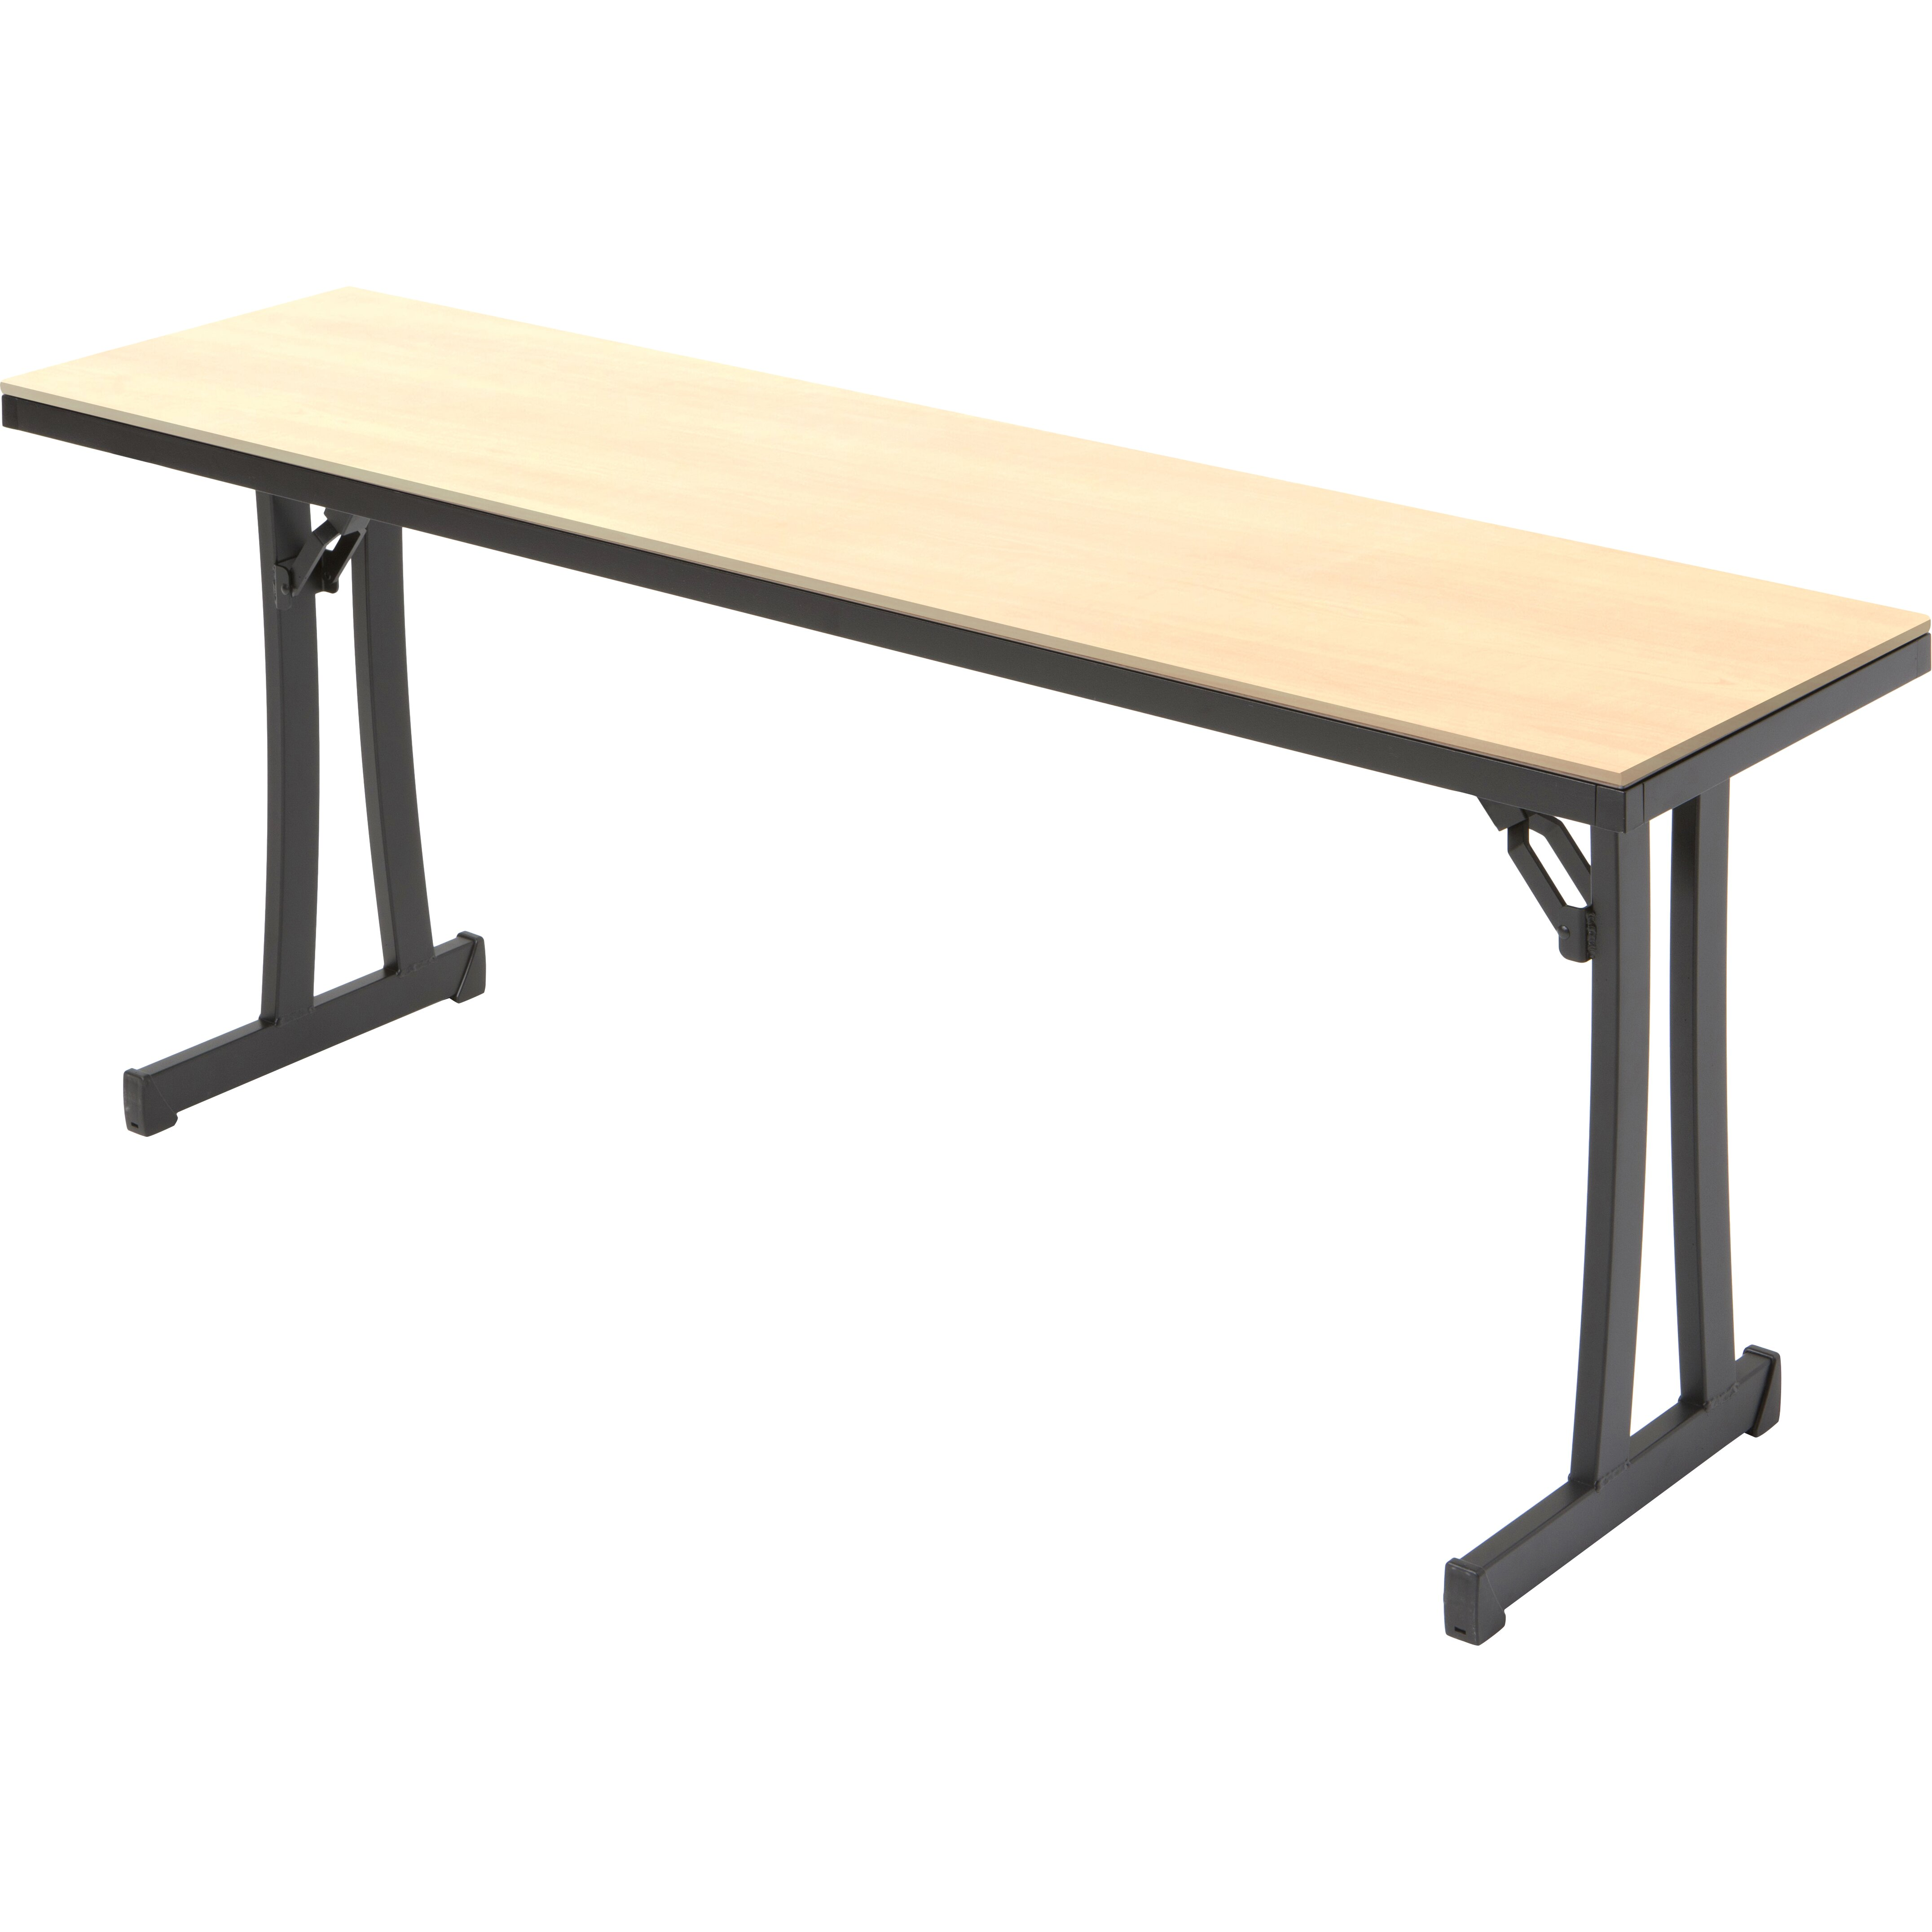 Mity Lite Folding Tables picture on Mity Lite Reveal 73 Rectangular Folding Table LRT1872FUL11 MITY1008 with Mity Lite Folding Tables, Folding Table 086065aa84aa216f357e6321cdc5f324